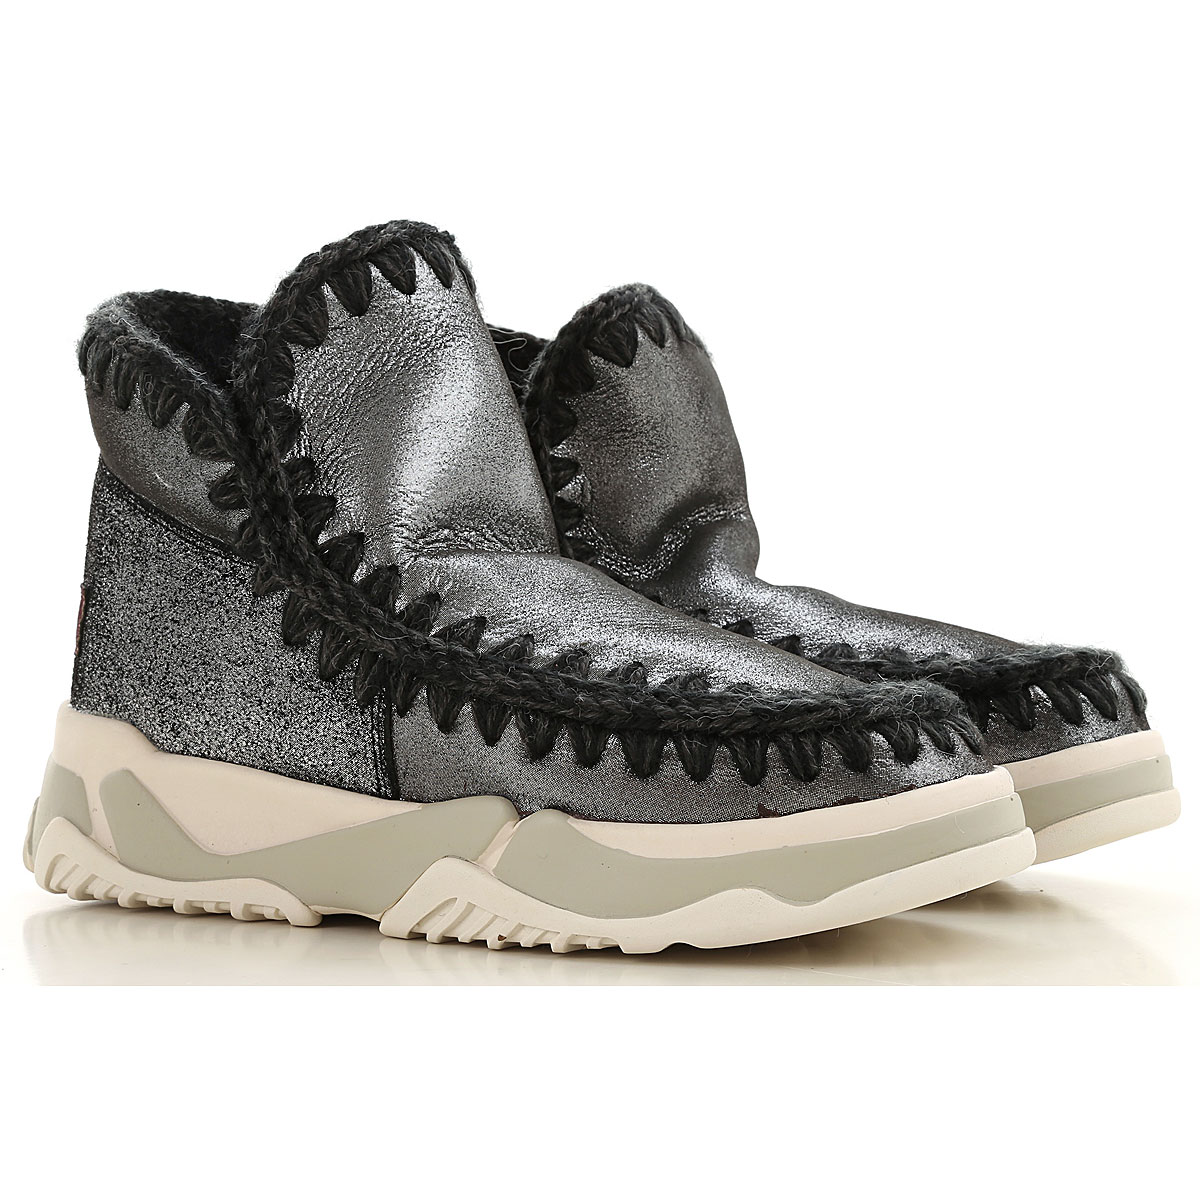 Mou Boots for Women, Booties On Sale, Black, Suede leather, 2019, EUR 36 - UK 3 - USA 5.5 EUR 37 - UK 4 - USA 6.5 EUR 38 - UK 5 - USA 7.5 EUR 39 - UK